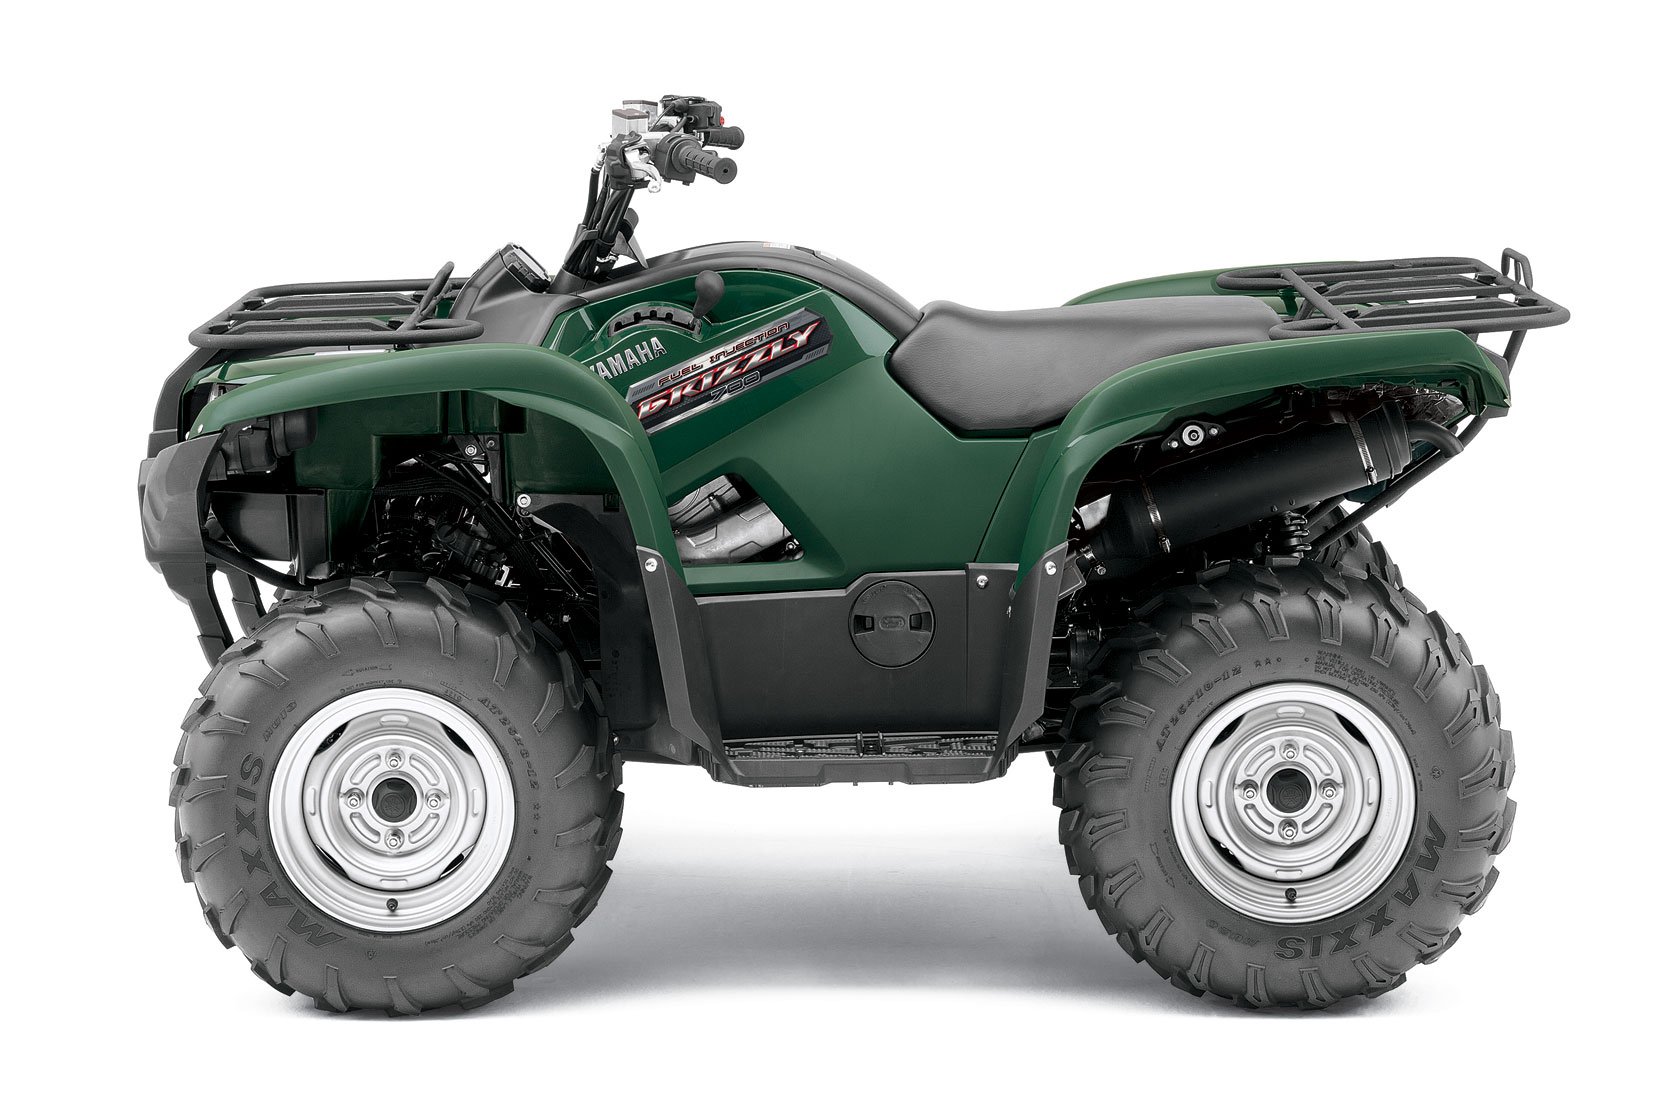 here: Home --- 2012 ATV Models --- 2012 Yamaha Grizzly 700 FI Auto 4x4